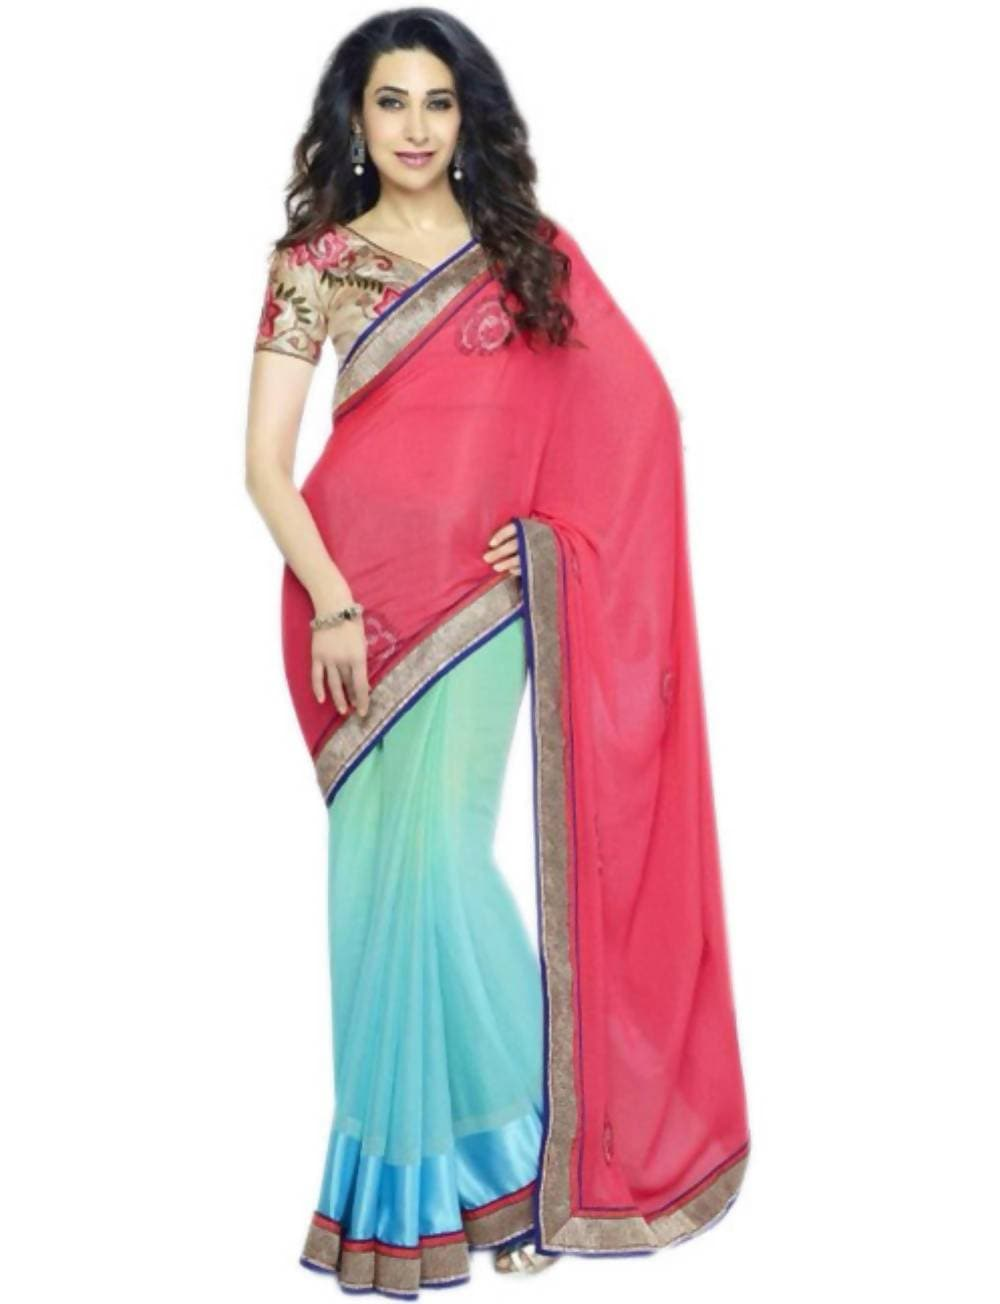 Vamika Karisha kapoor Multicolour Heavy work Blouse Saree